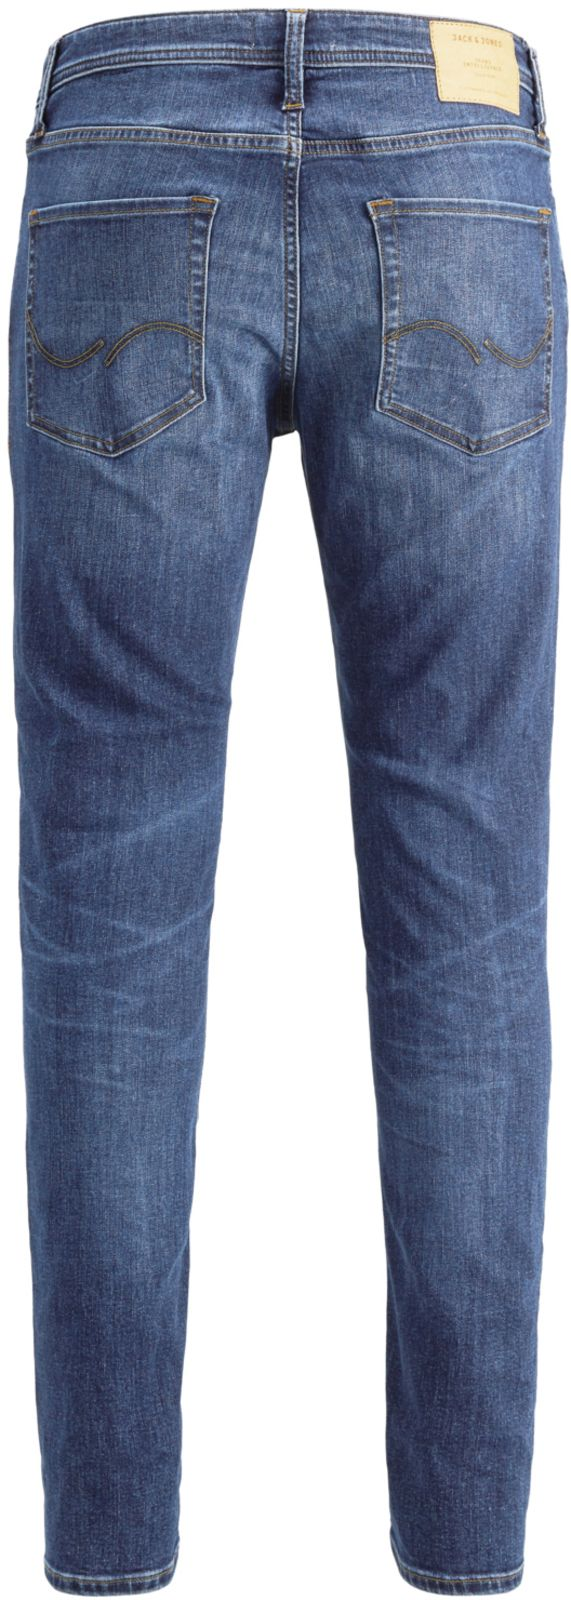 Jack-amp-Jones-Tim-Original-Slim-Fit-surtidos-Denim-Jeans-28-36W-30-34L miniatura 9